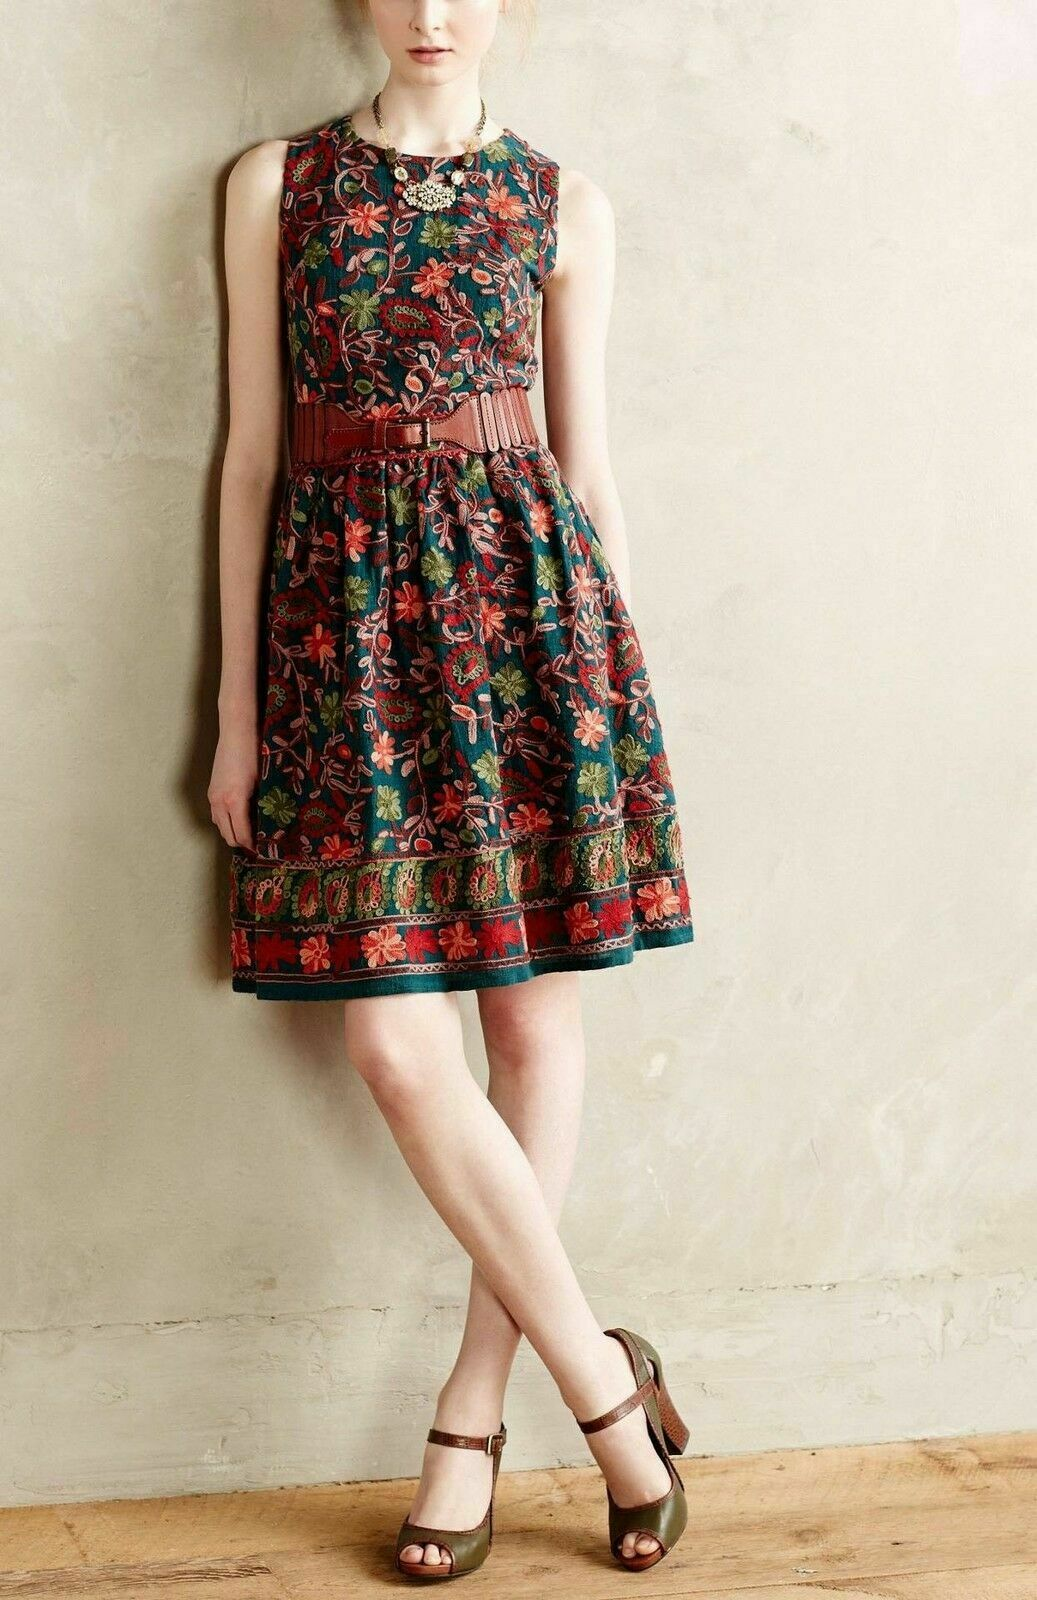 NWT Anthropologie Needlepoint Garden Dress by Adelyn Rae.Embroidered Size 8 New